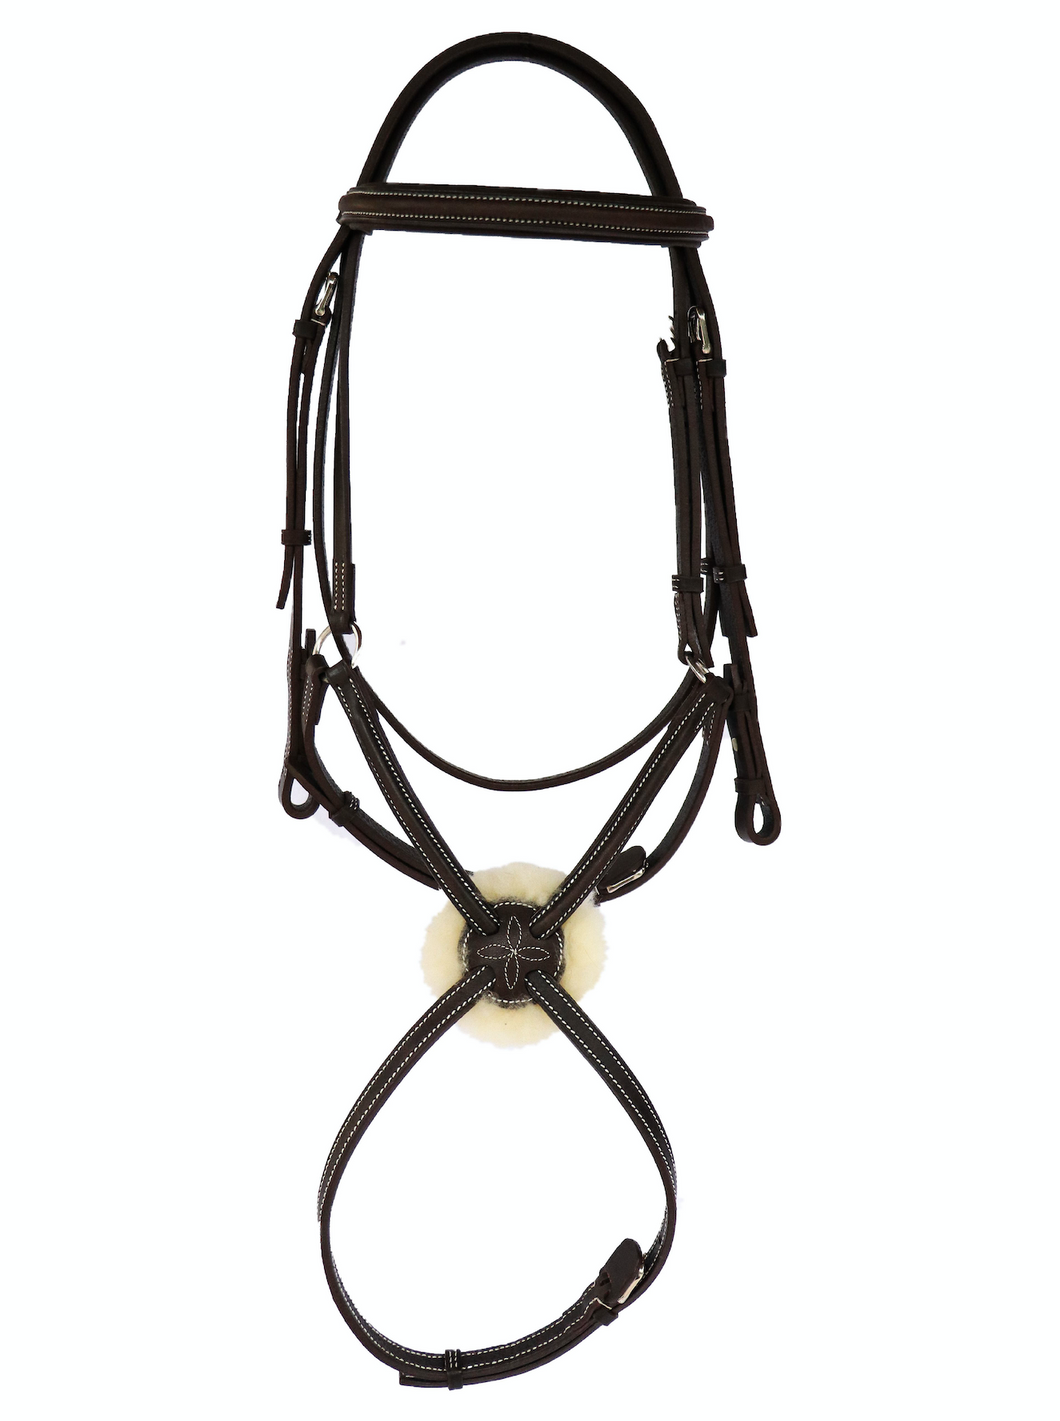 Second Series: Figure Eight Bridle